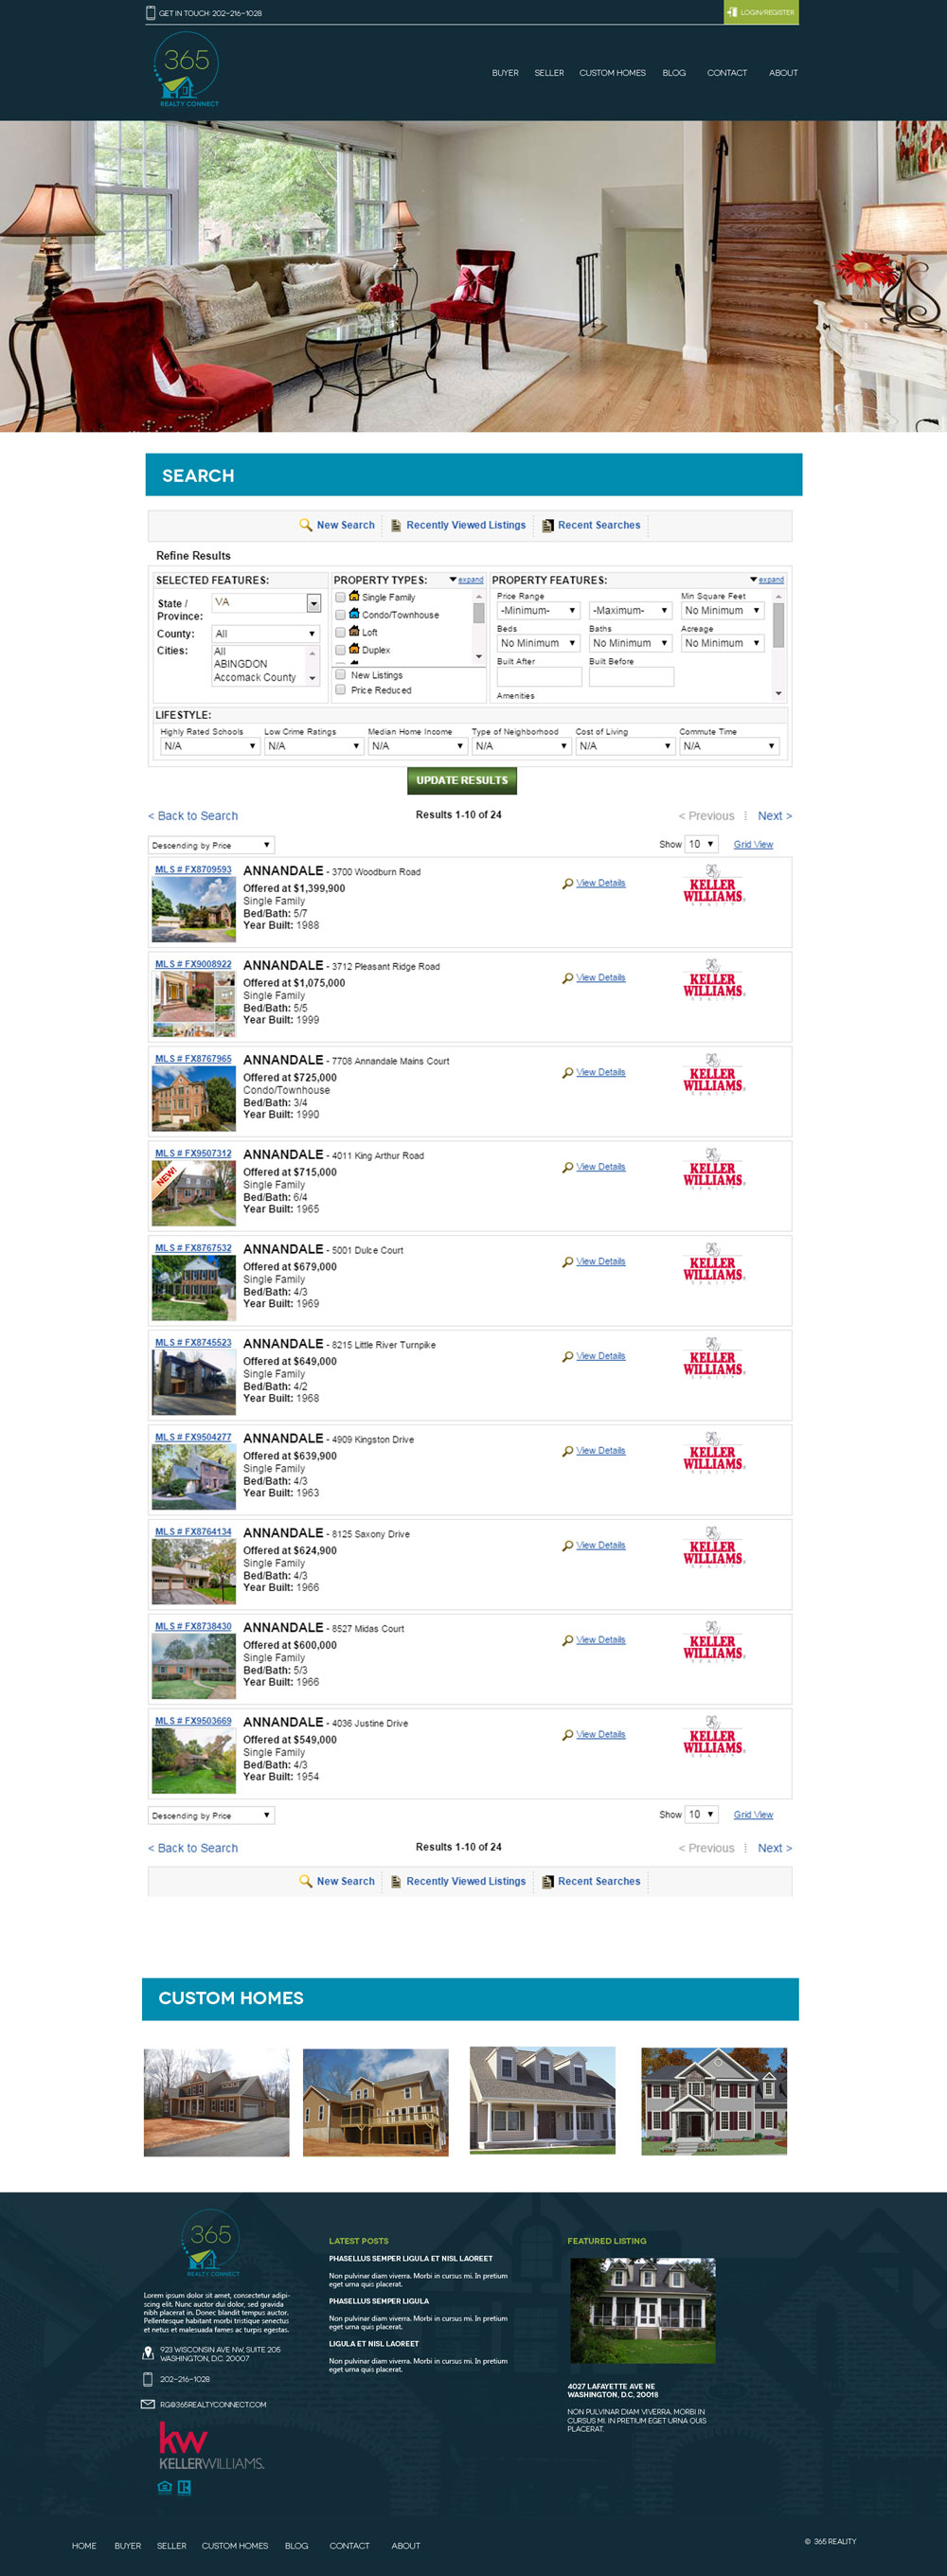 Real Estate Company Website Mock - Search Results